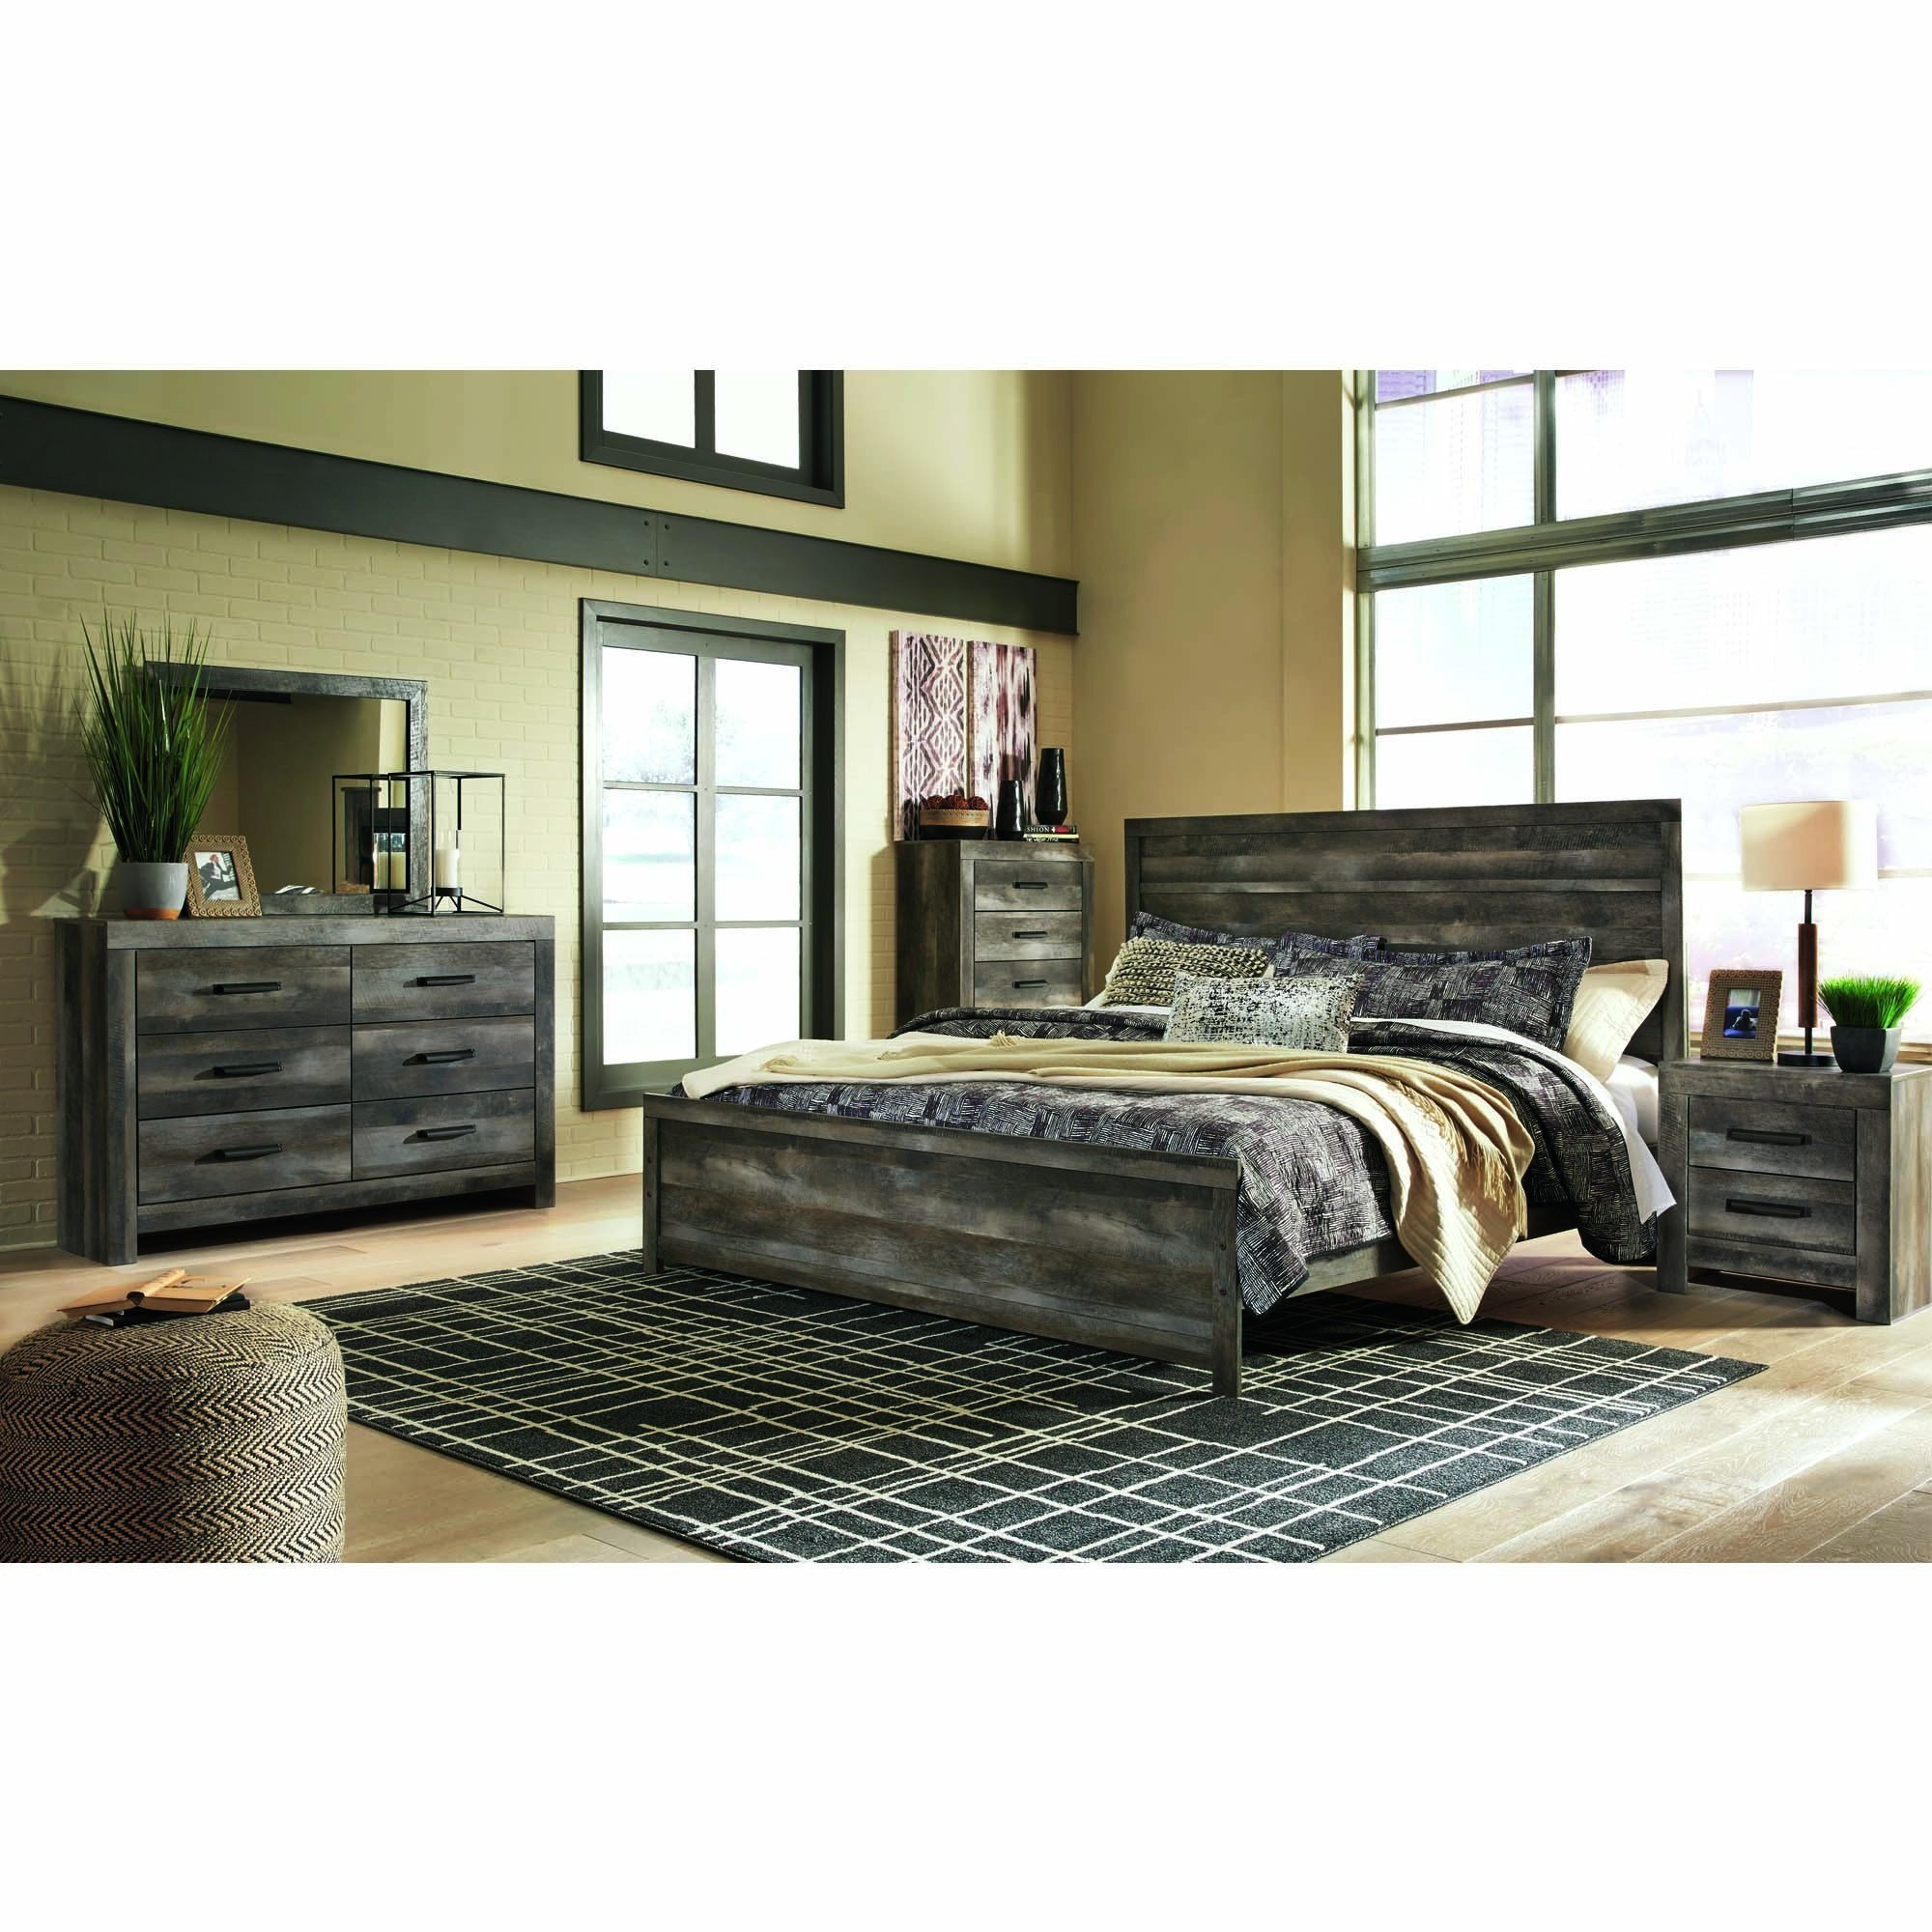 Best Old Fashioned Rustic King Bedroom Set Review Iloss With Pictures